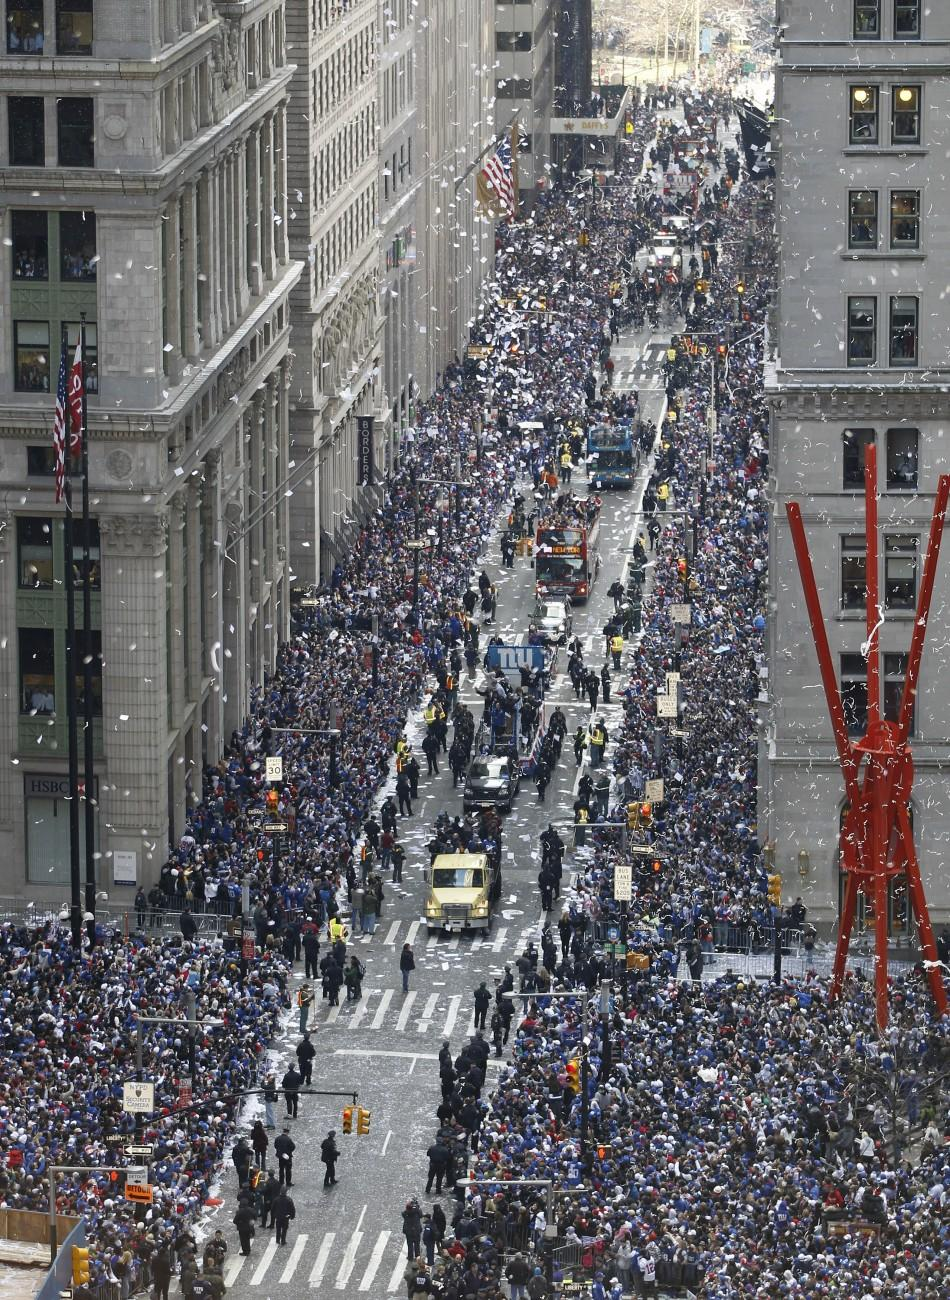 Streamers and confetti rain down on the New York Giants Super Bowl XLVI victory parade through the Canyon of Heroes along Broadway in New York